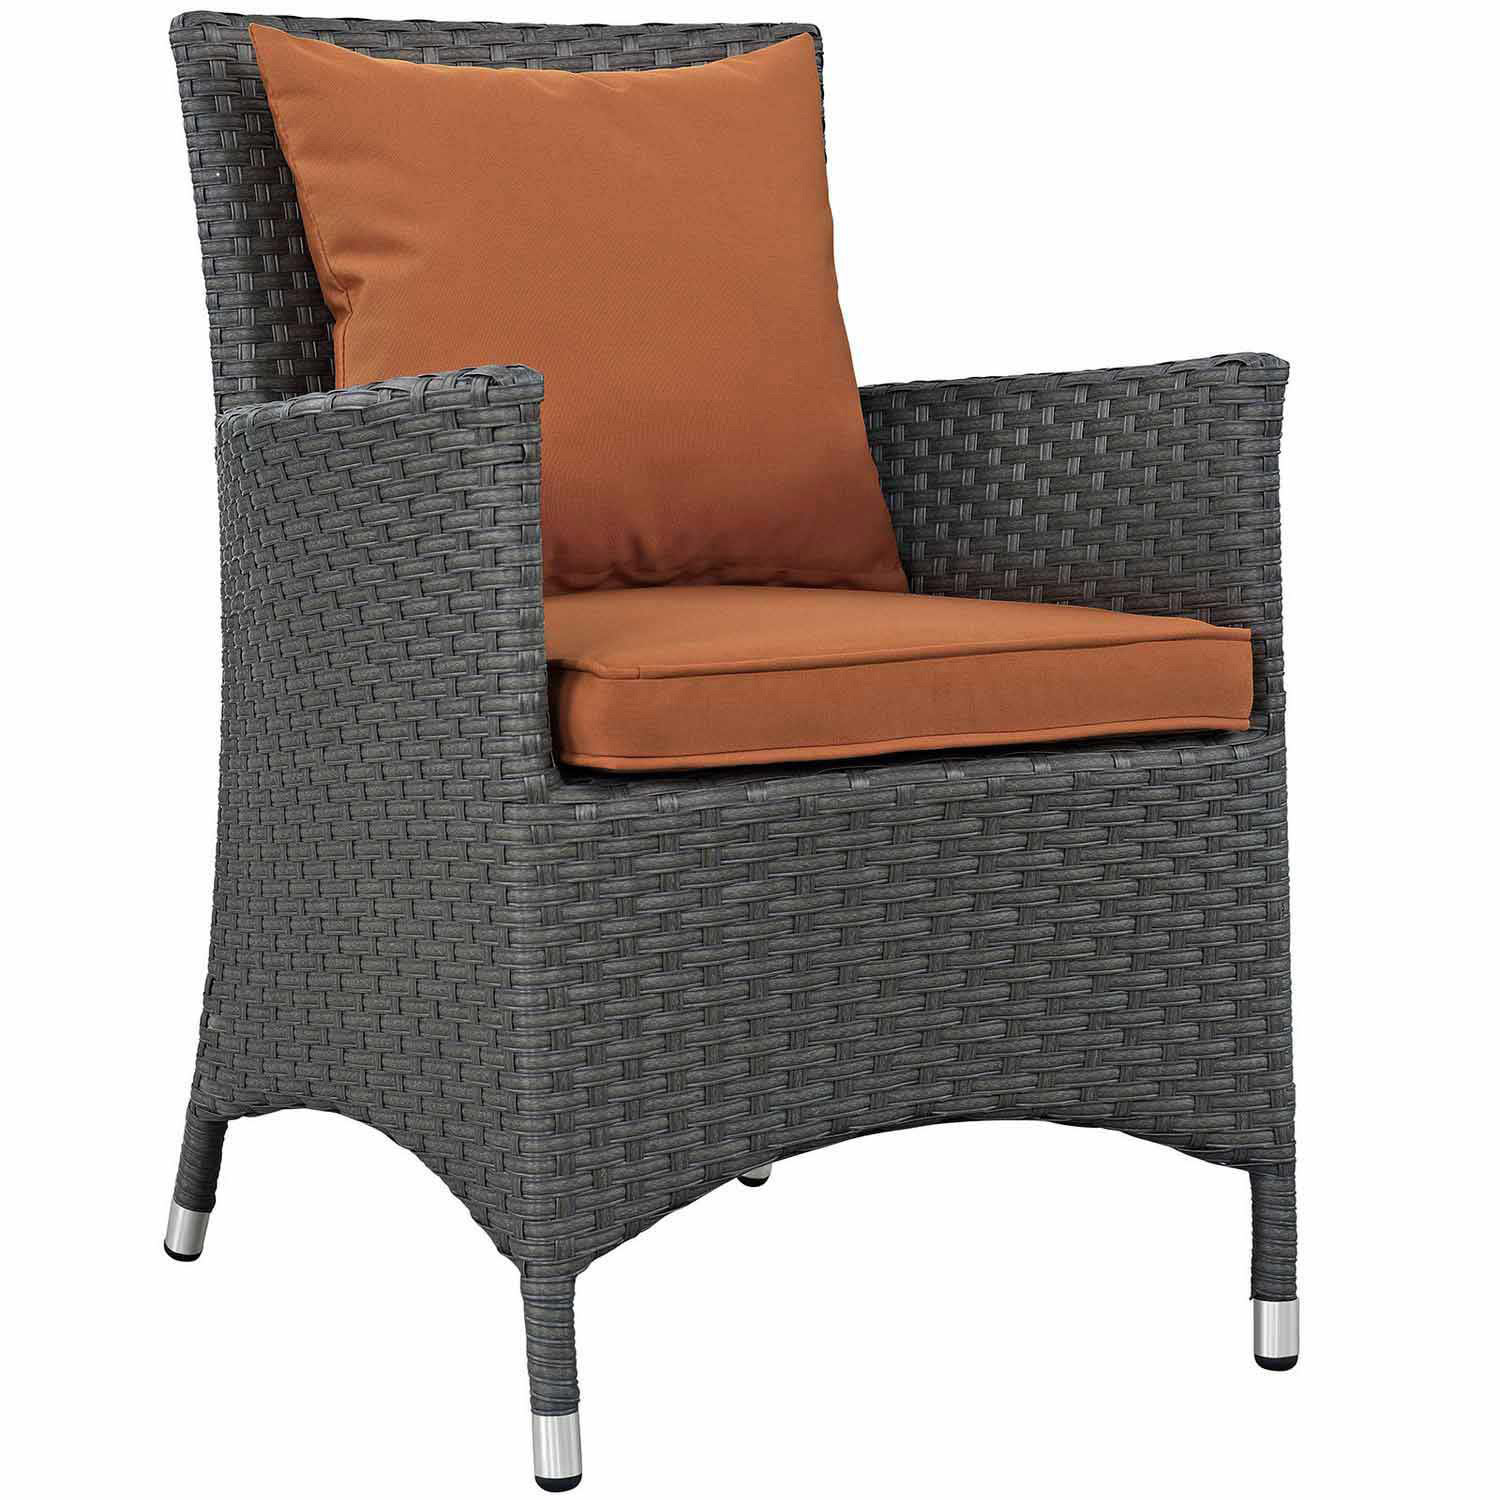 Modway Sojourn Dining Outdoor Patio Sunbrella Arm Chair - Canvas Tuscan